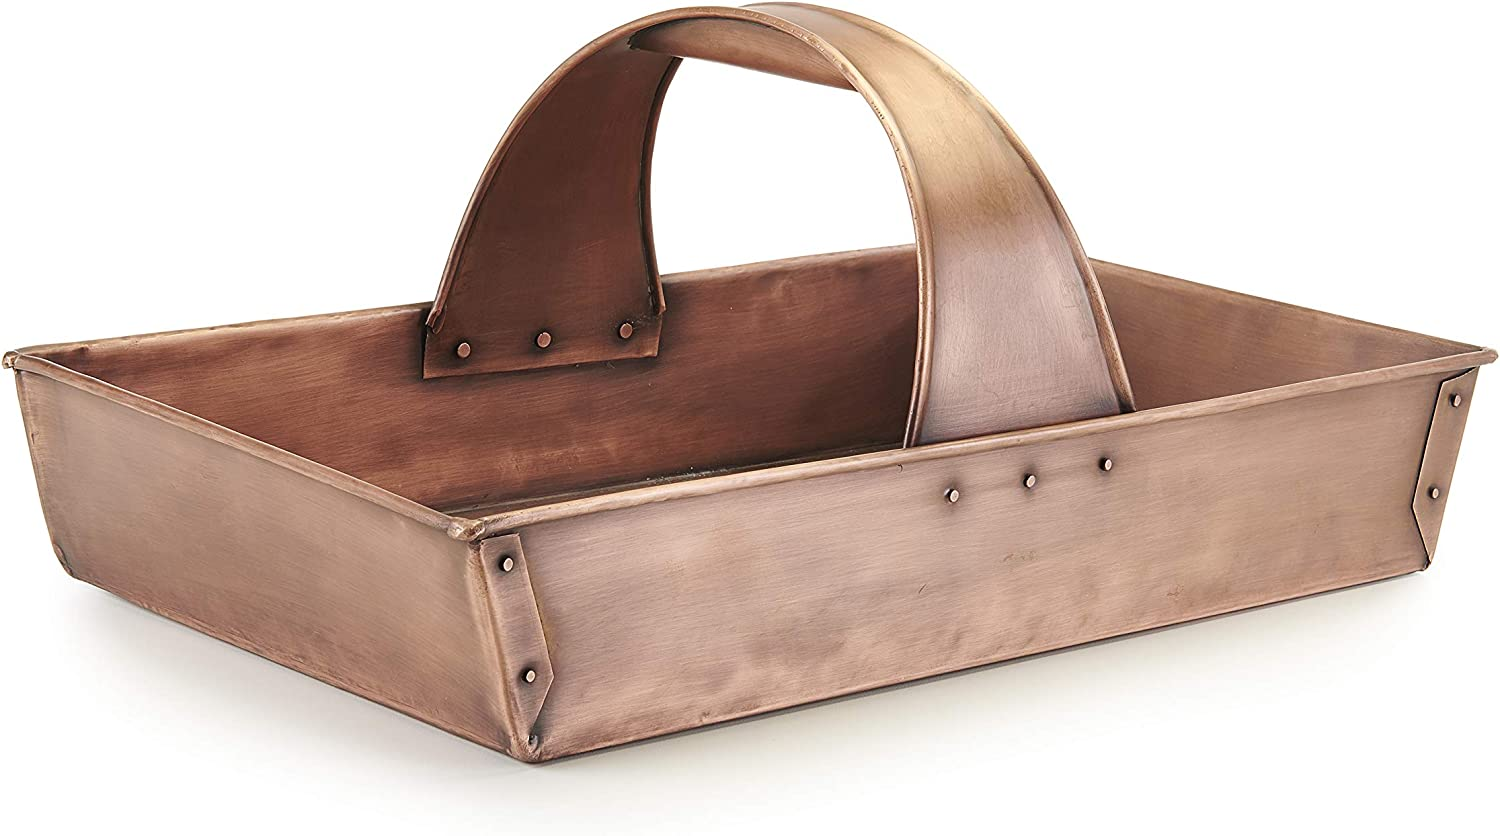 Good Directions TRUG101 Garden Basket Trug, Pure Copper